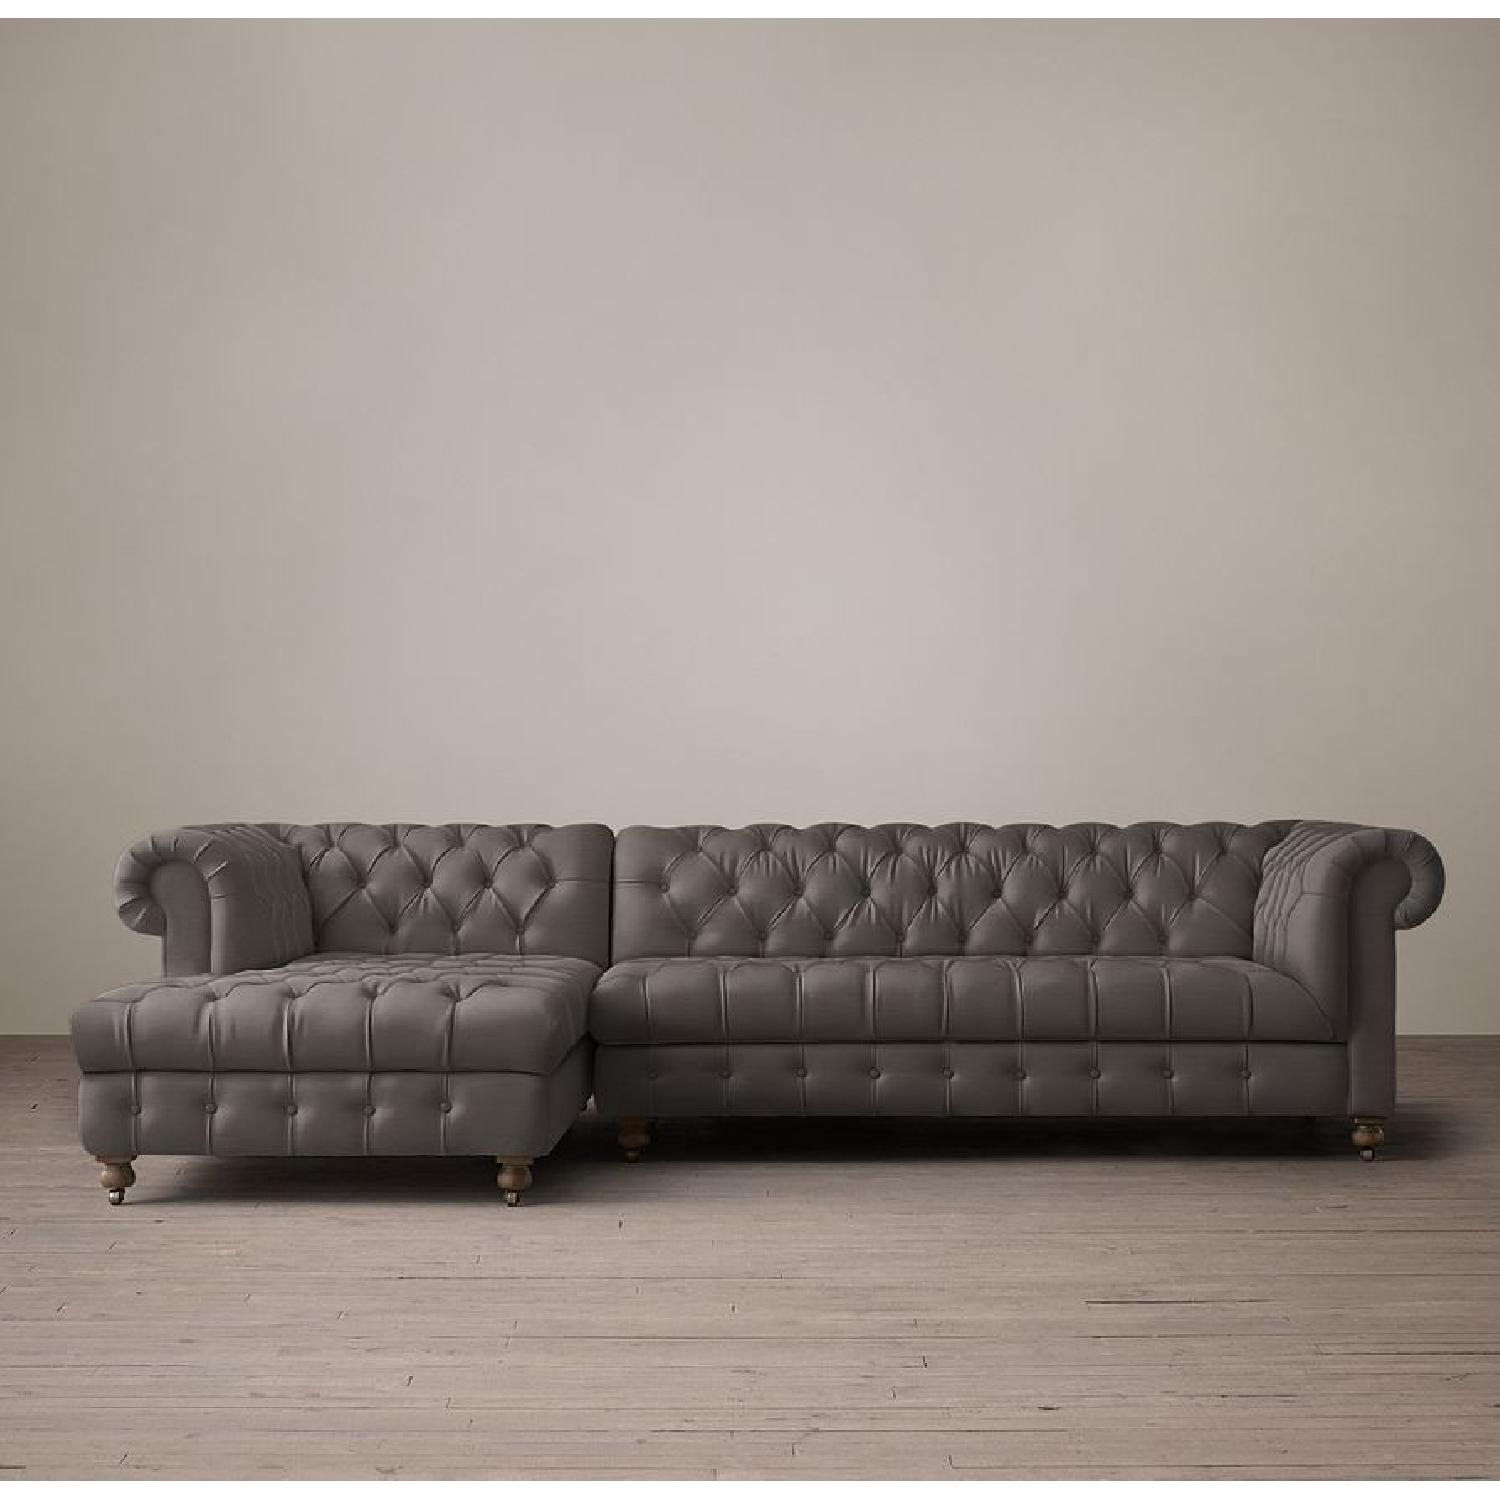 Restoration Hardware Tufted Linen Sectional Couch - image-4